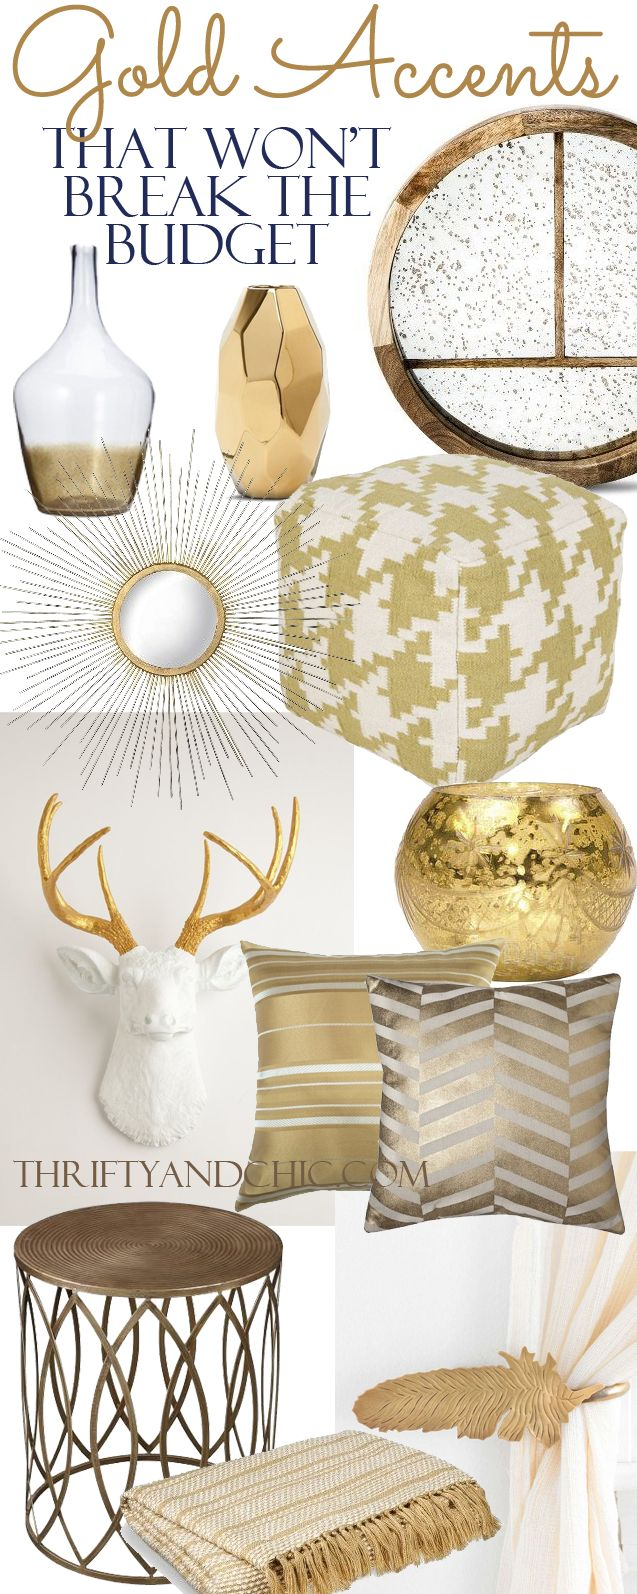 18 gold home decor pieces that won't breat the budget. Divided up into price!: